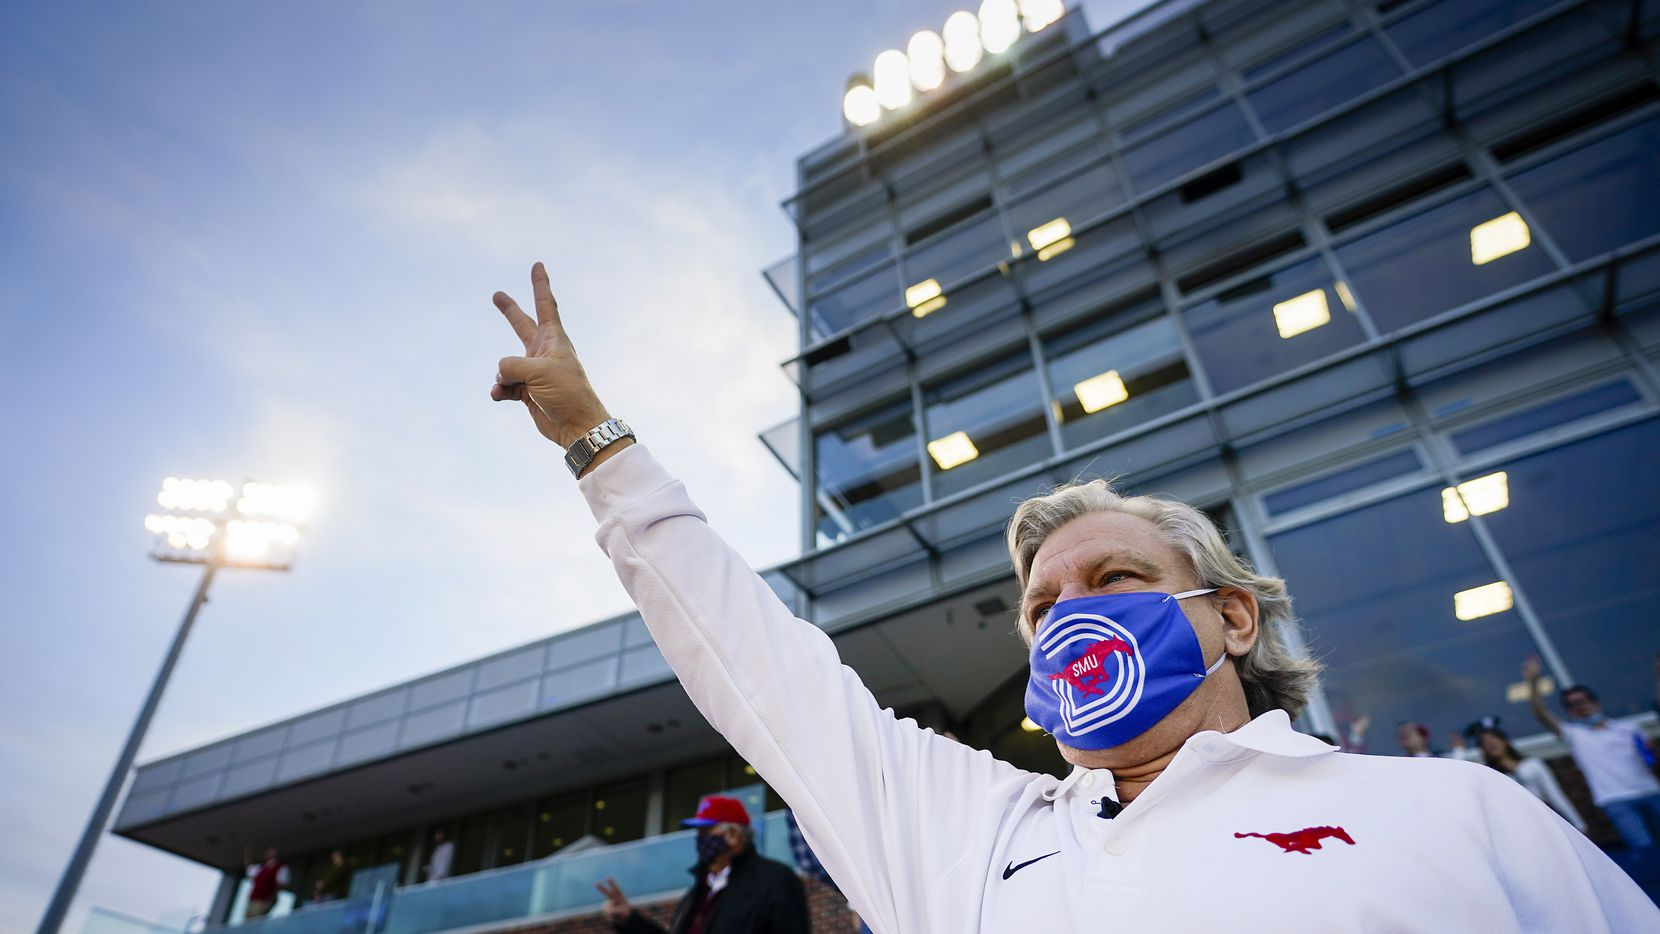 SMU fan Paul Layne stands for the playing of the school's alma mater before a game against Navy at Ford Stadium on Saturday, Oct. 31, 2020, in Dallas. Layne has been to 527 straight SMU football games dating back 48 years.